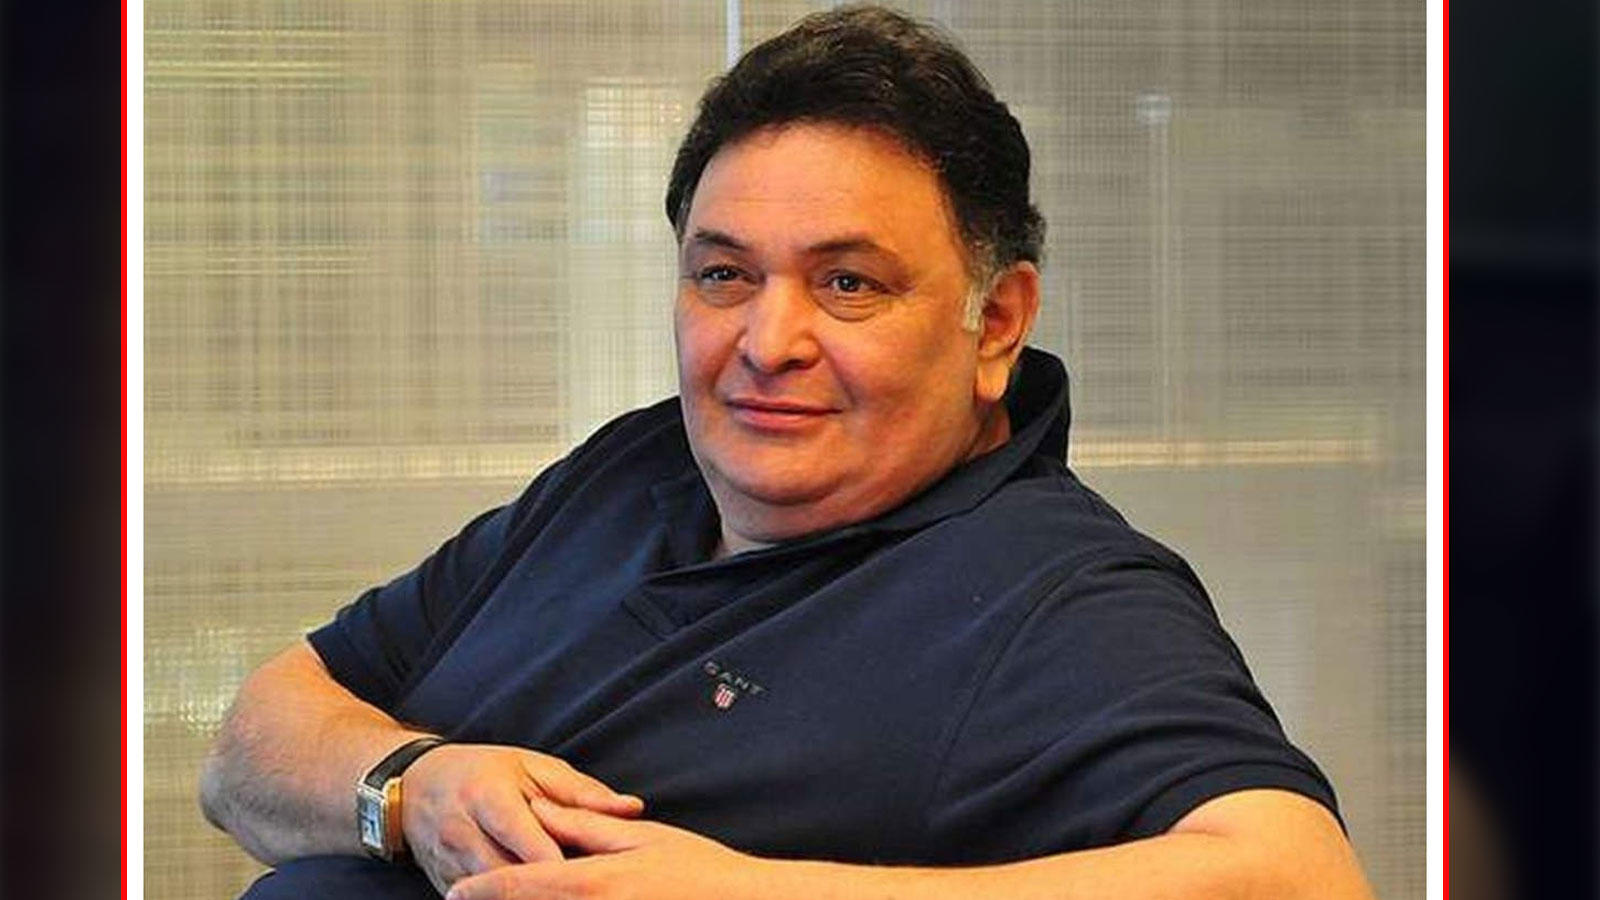 coronavirus-lockdown-rishi-kapoor-advises-government-to-open-all-licensed-liquor-stores-heres-why